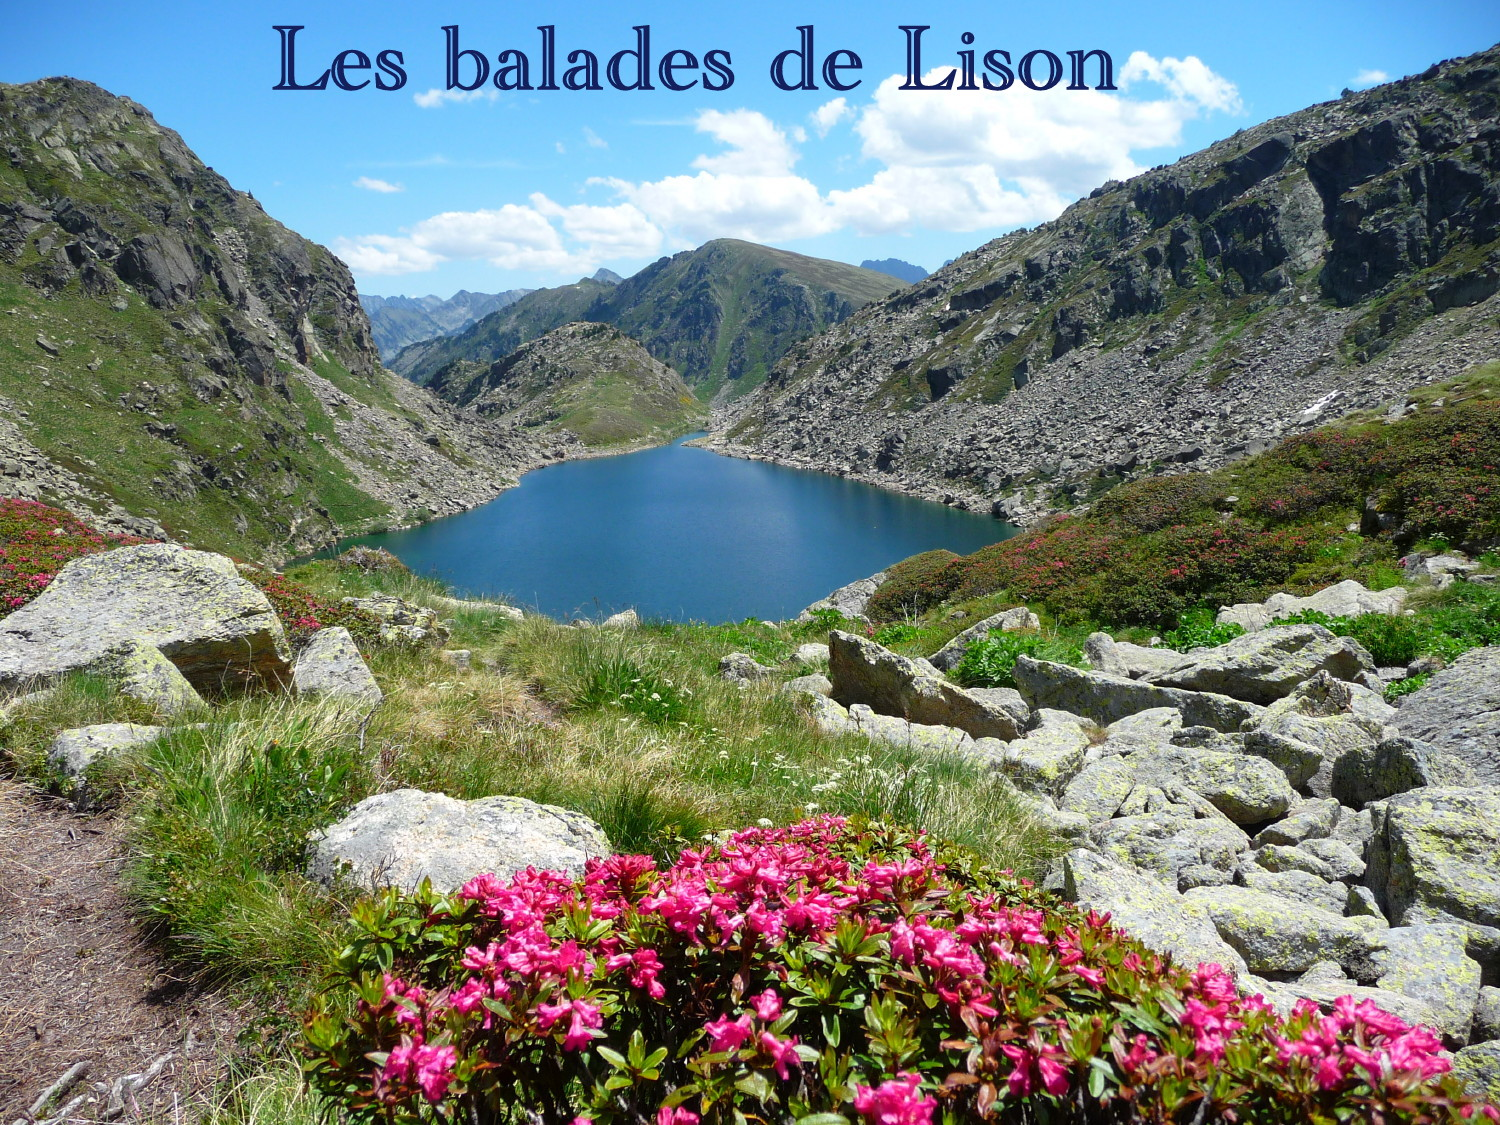 Les balades de Lison